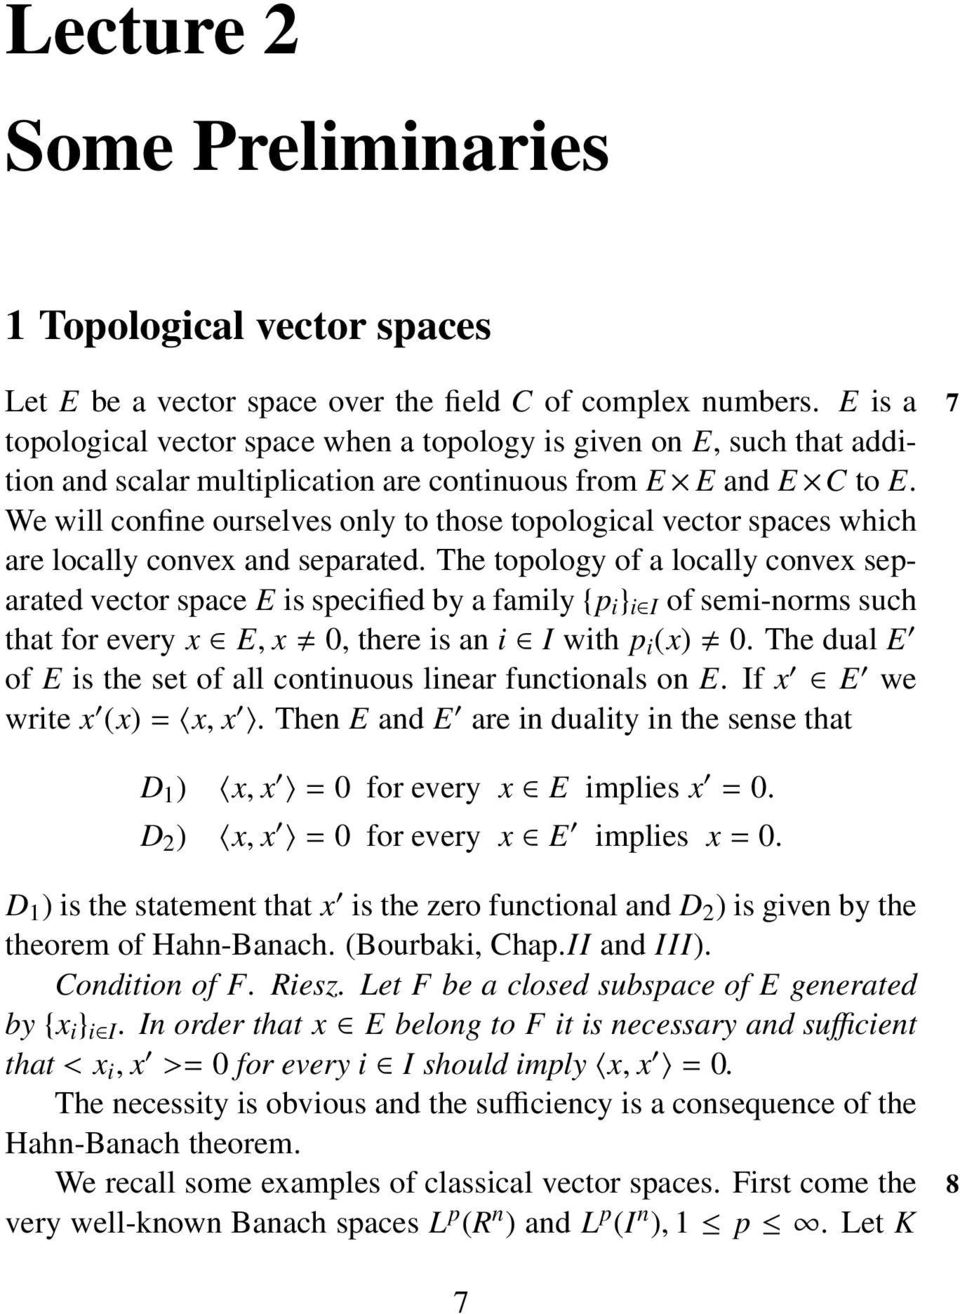 We will confine ourselves only to those topological vector spaces which are locally convex and separated.